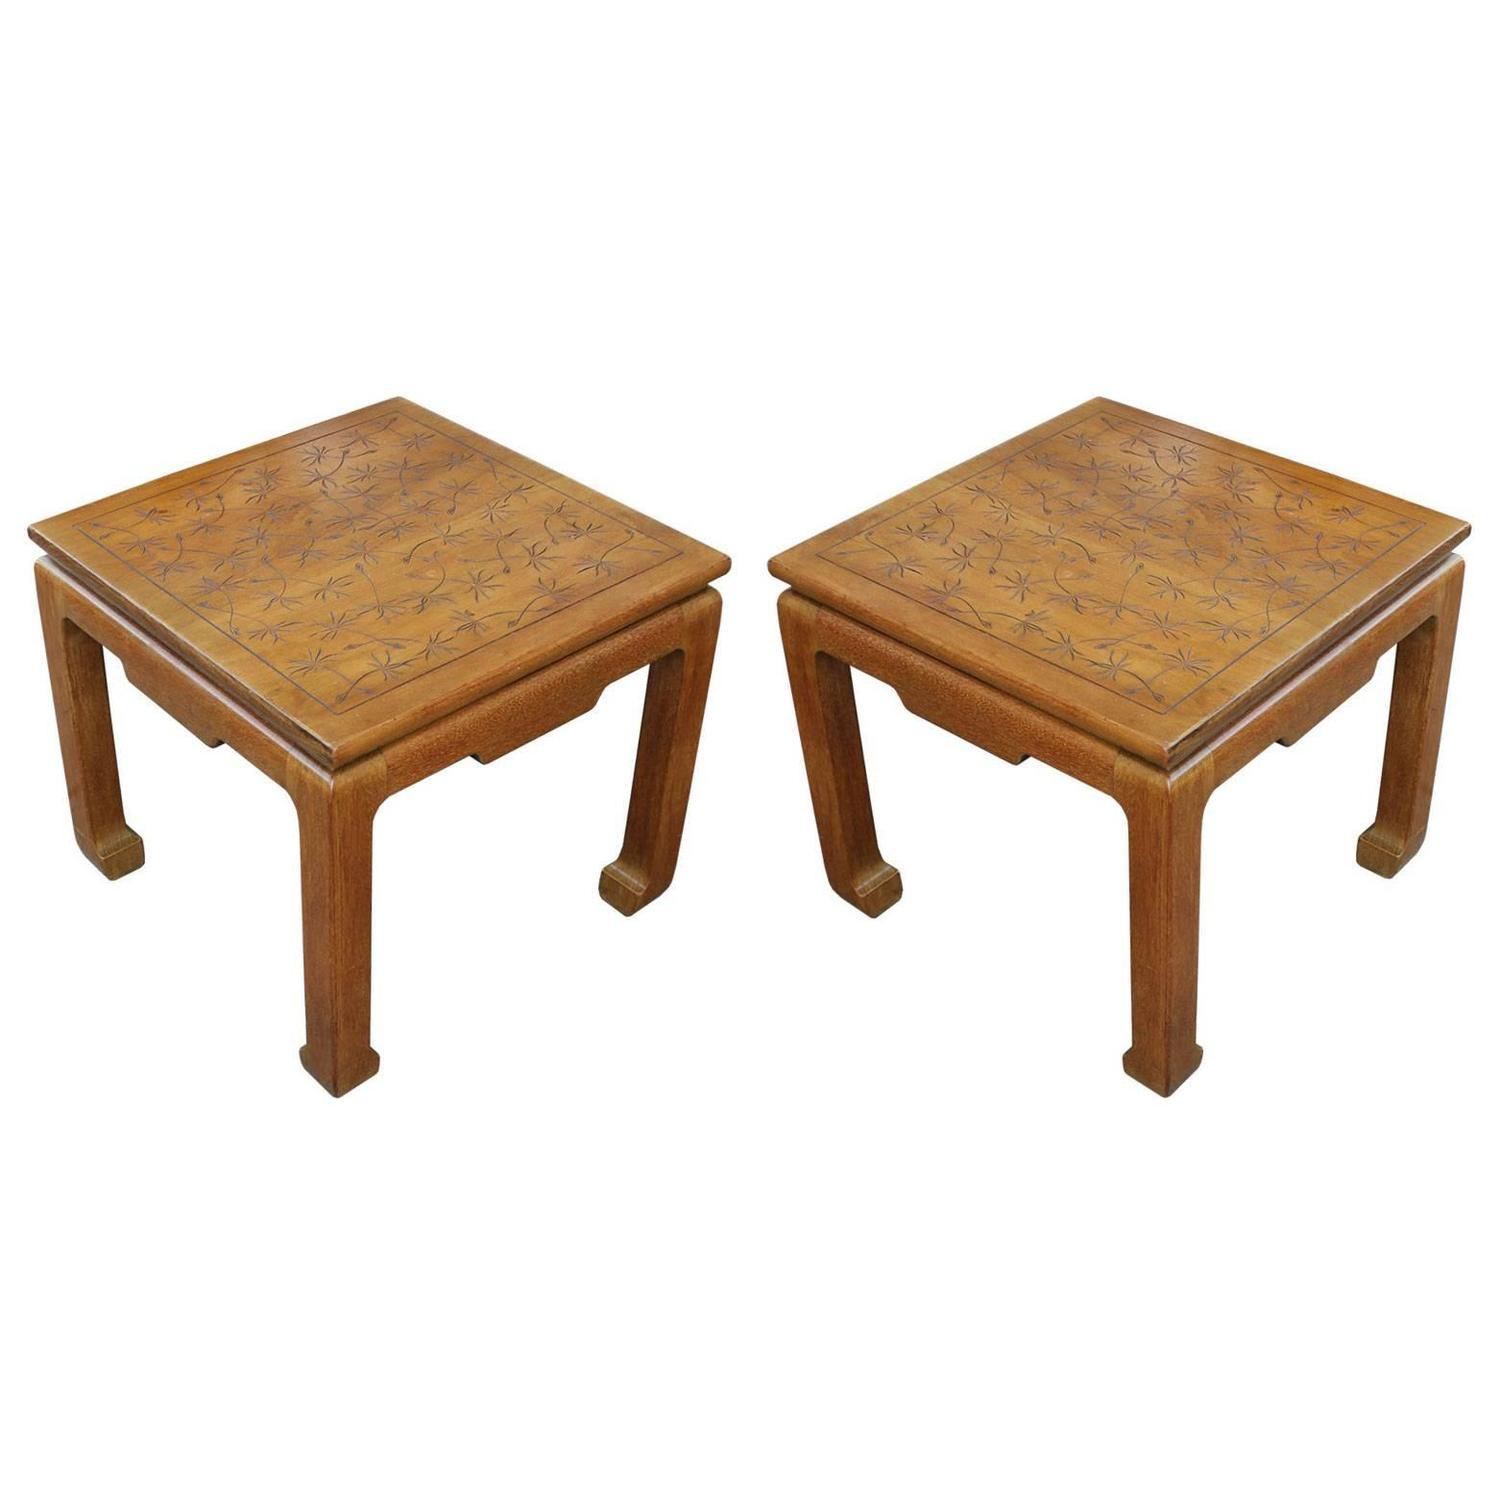 Fabulous Pair of Incised Modern Side Tables by Kittinger with